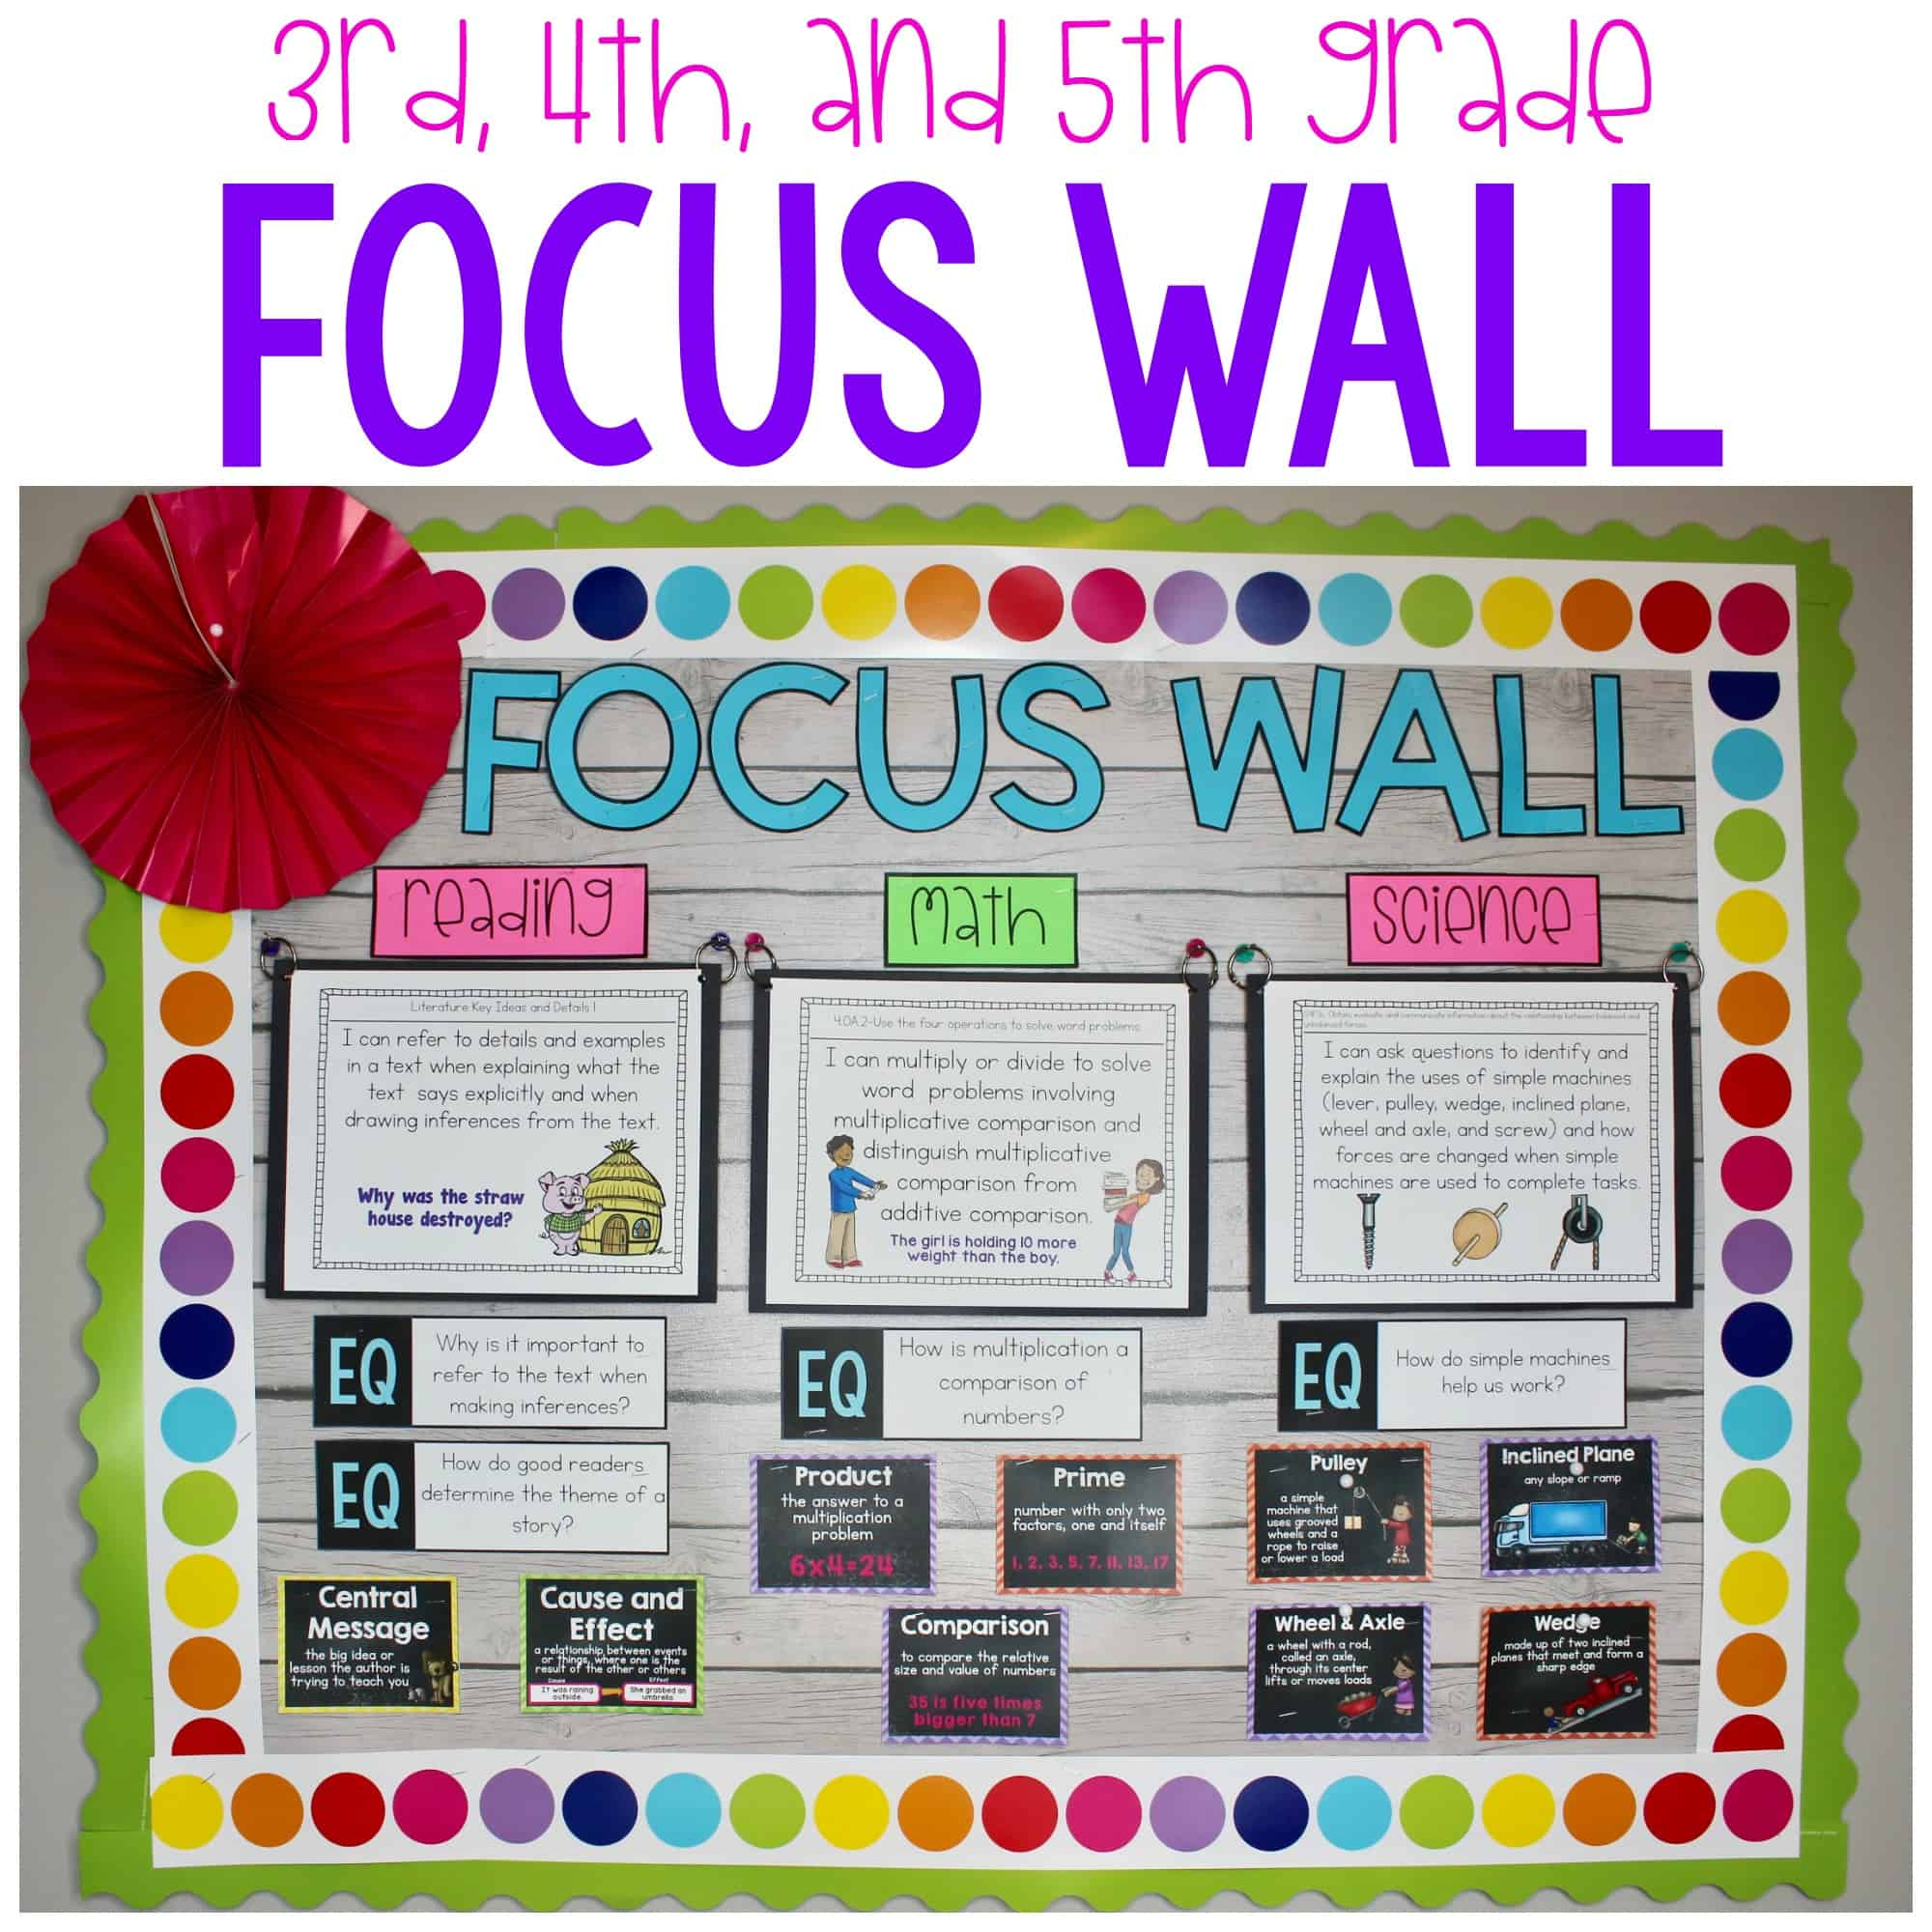 3rd, 4th, and 5th grade focus wall back to school resources